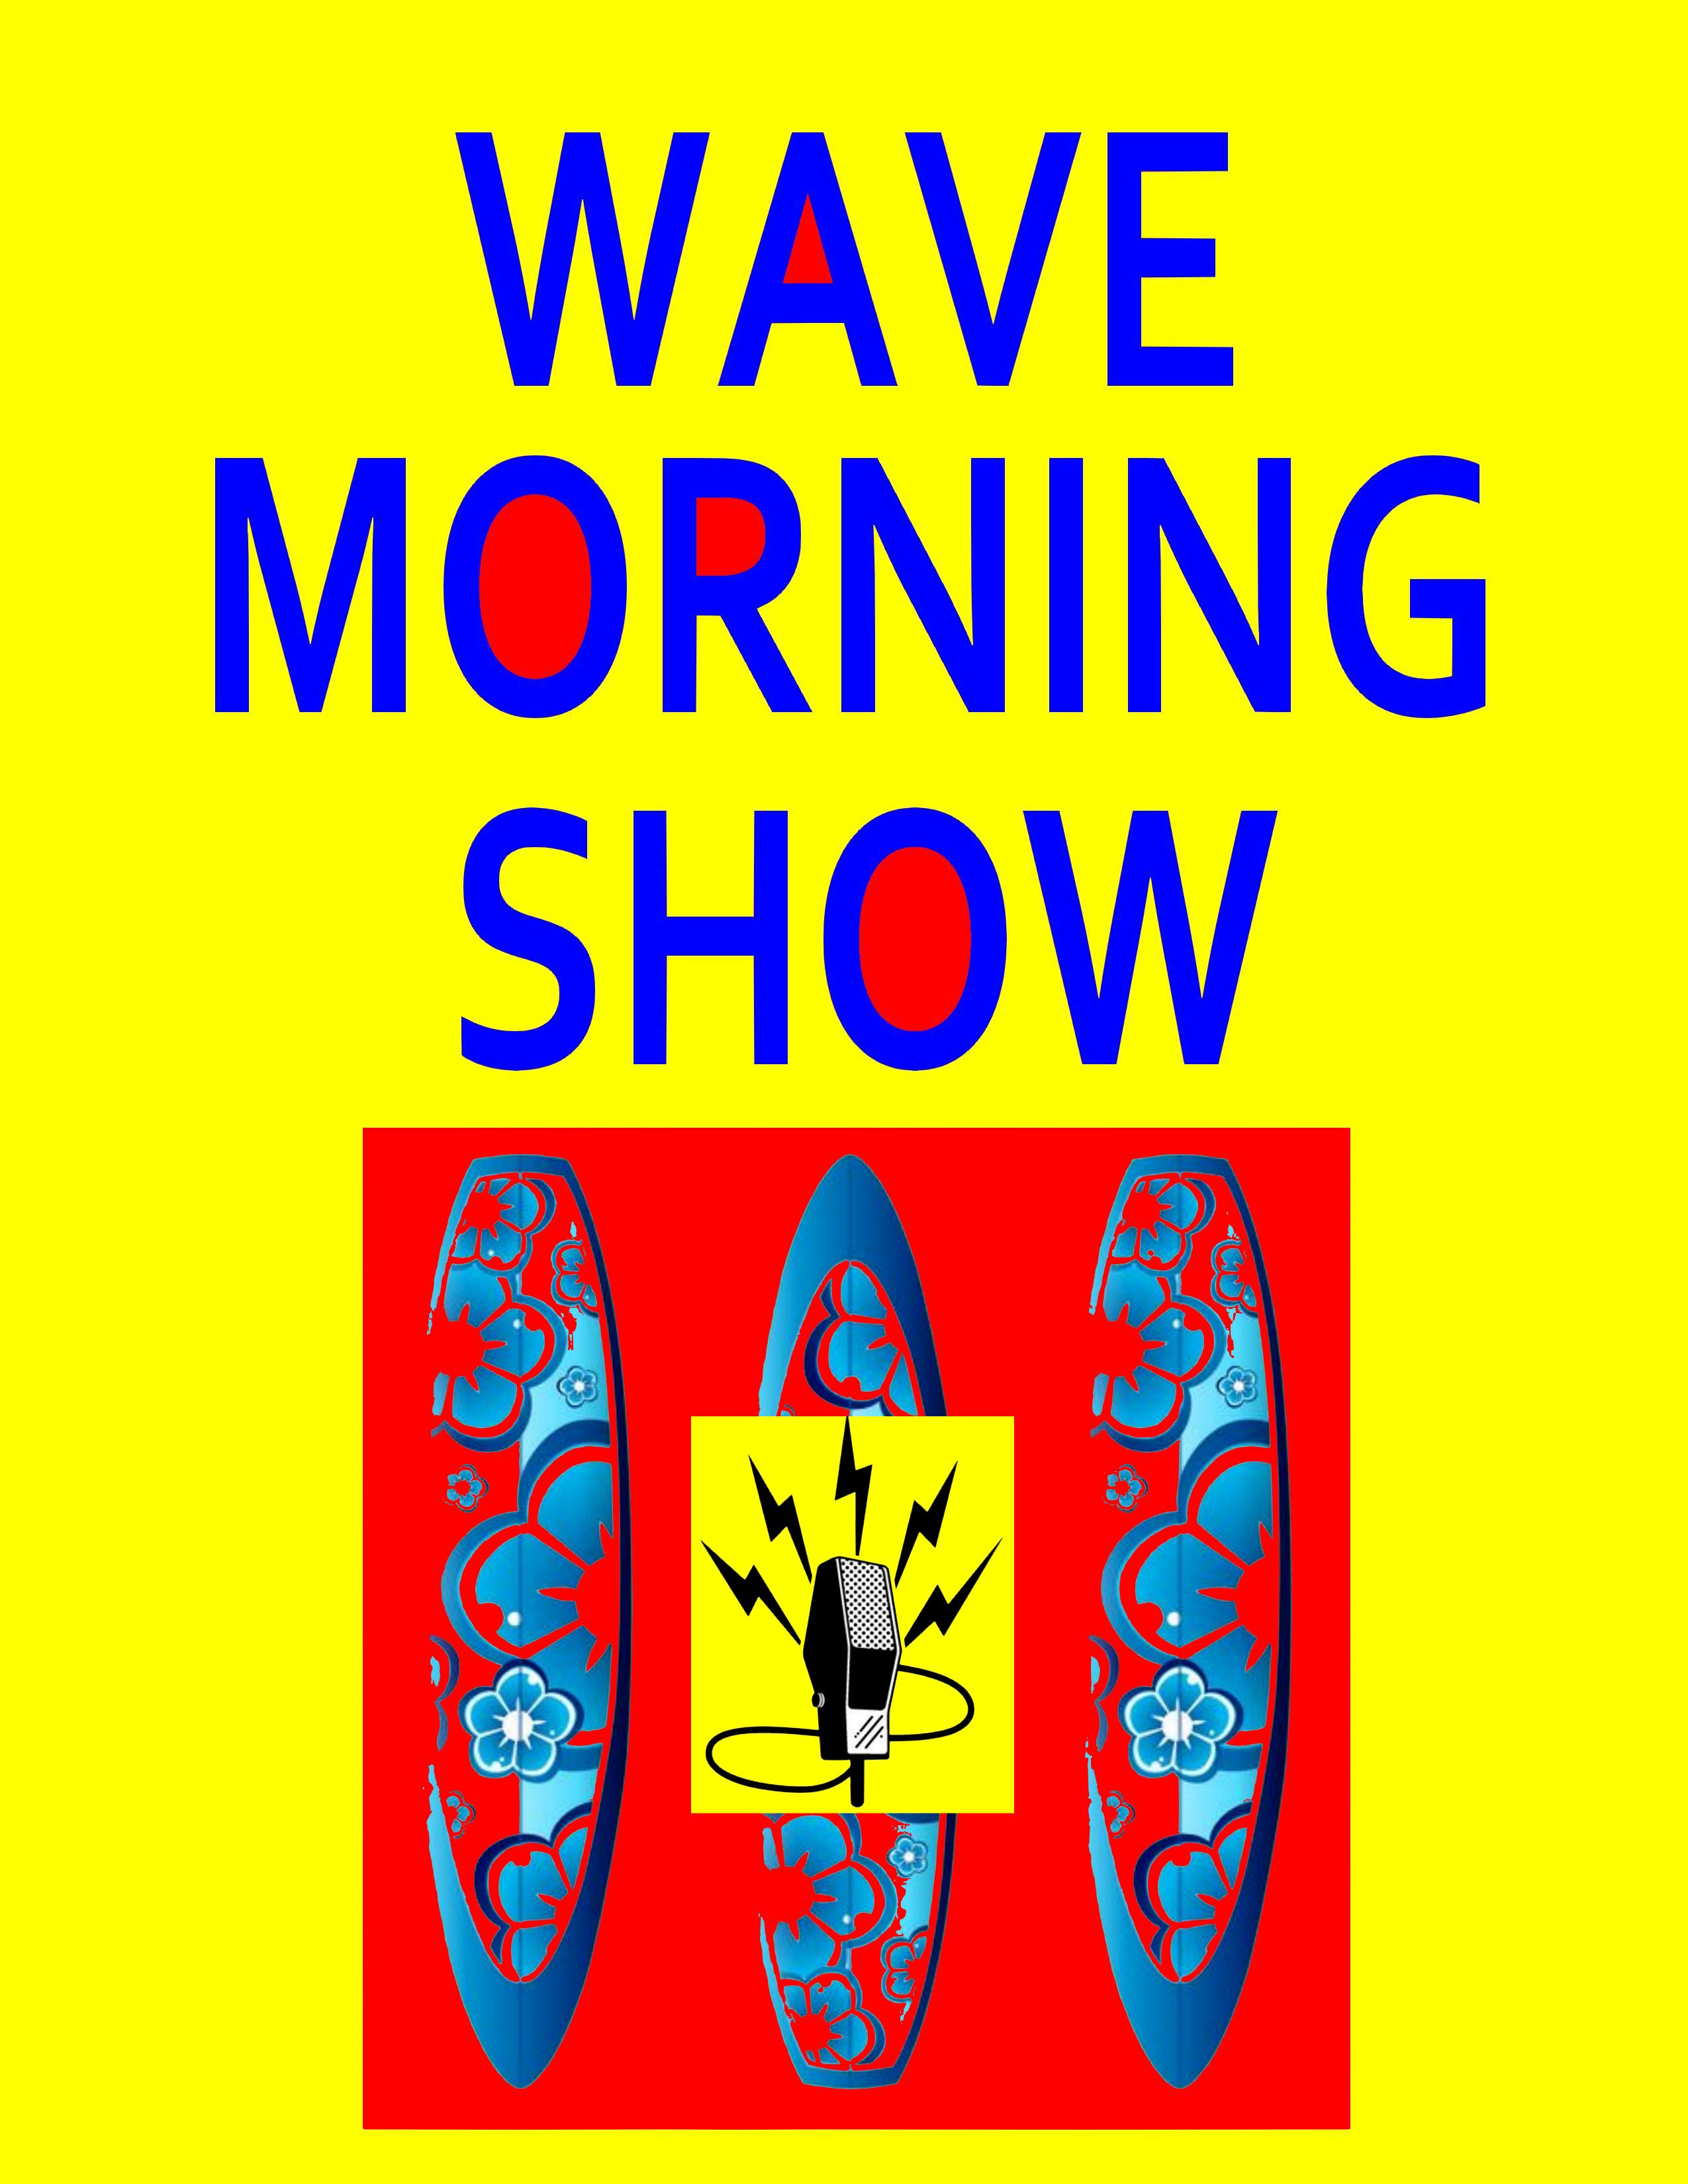 Wave Morning Show